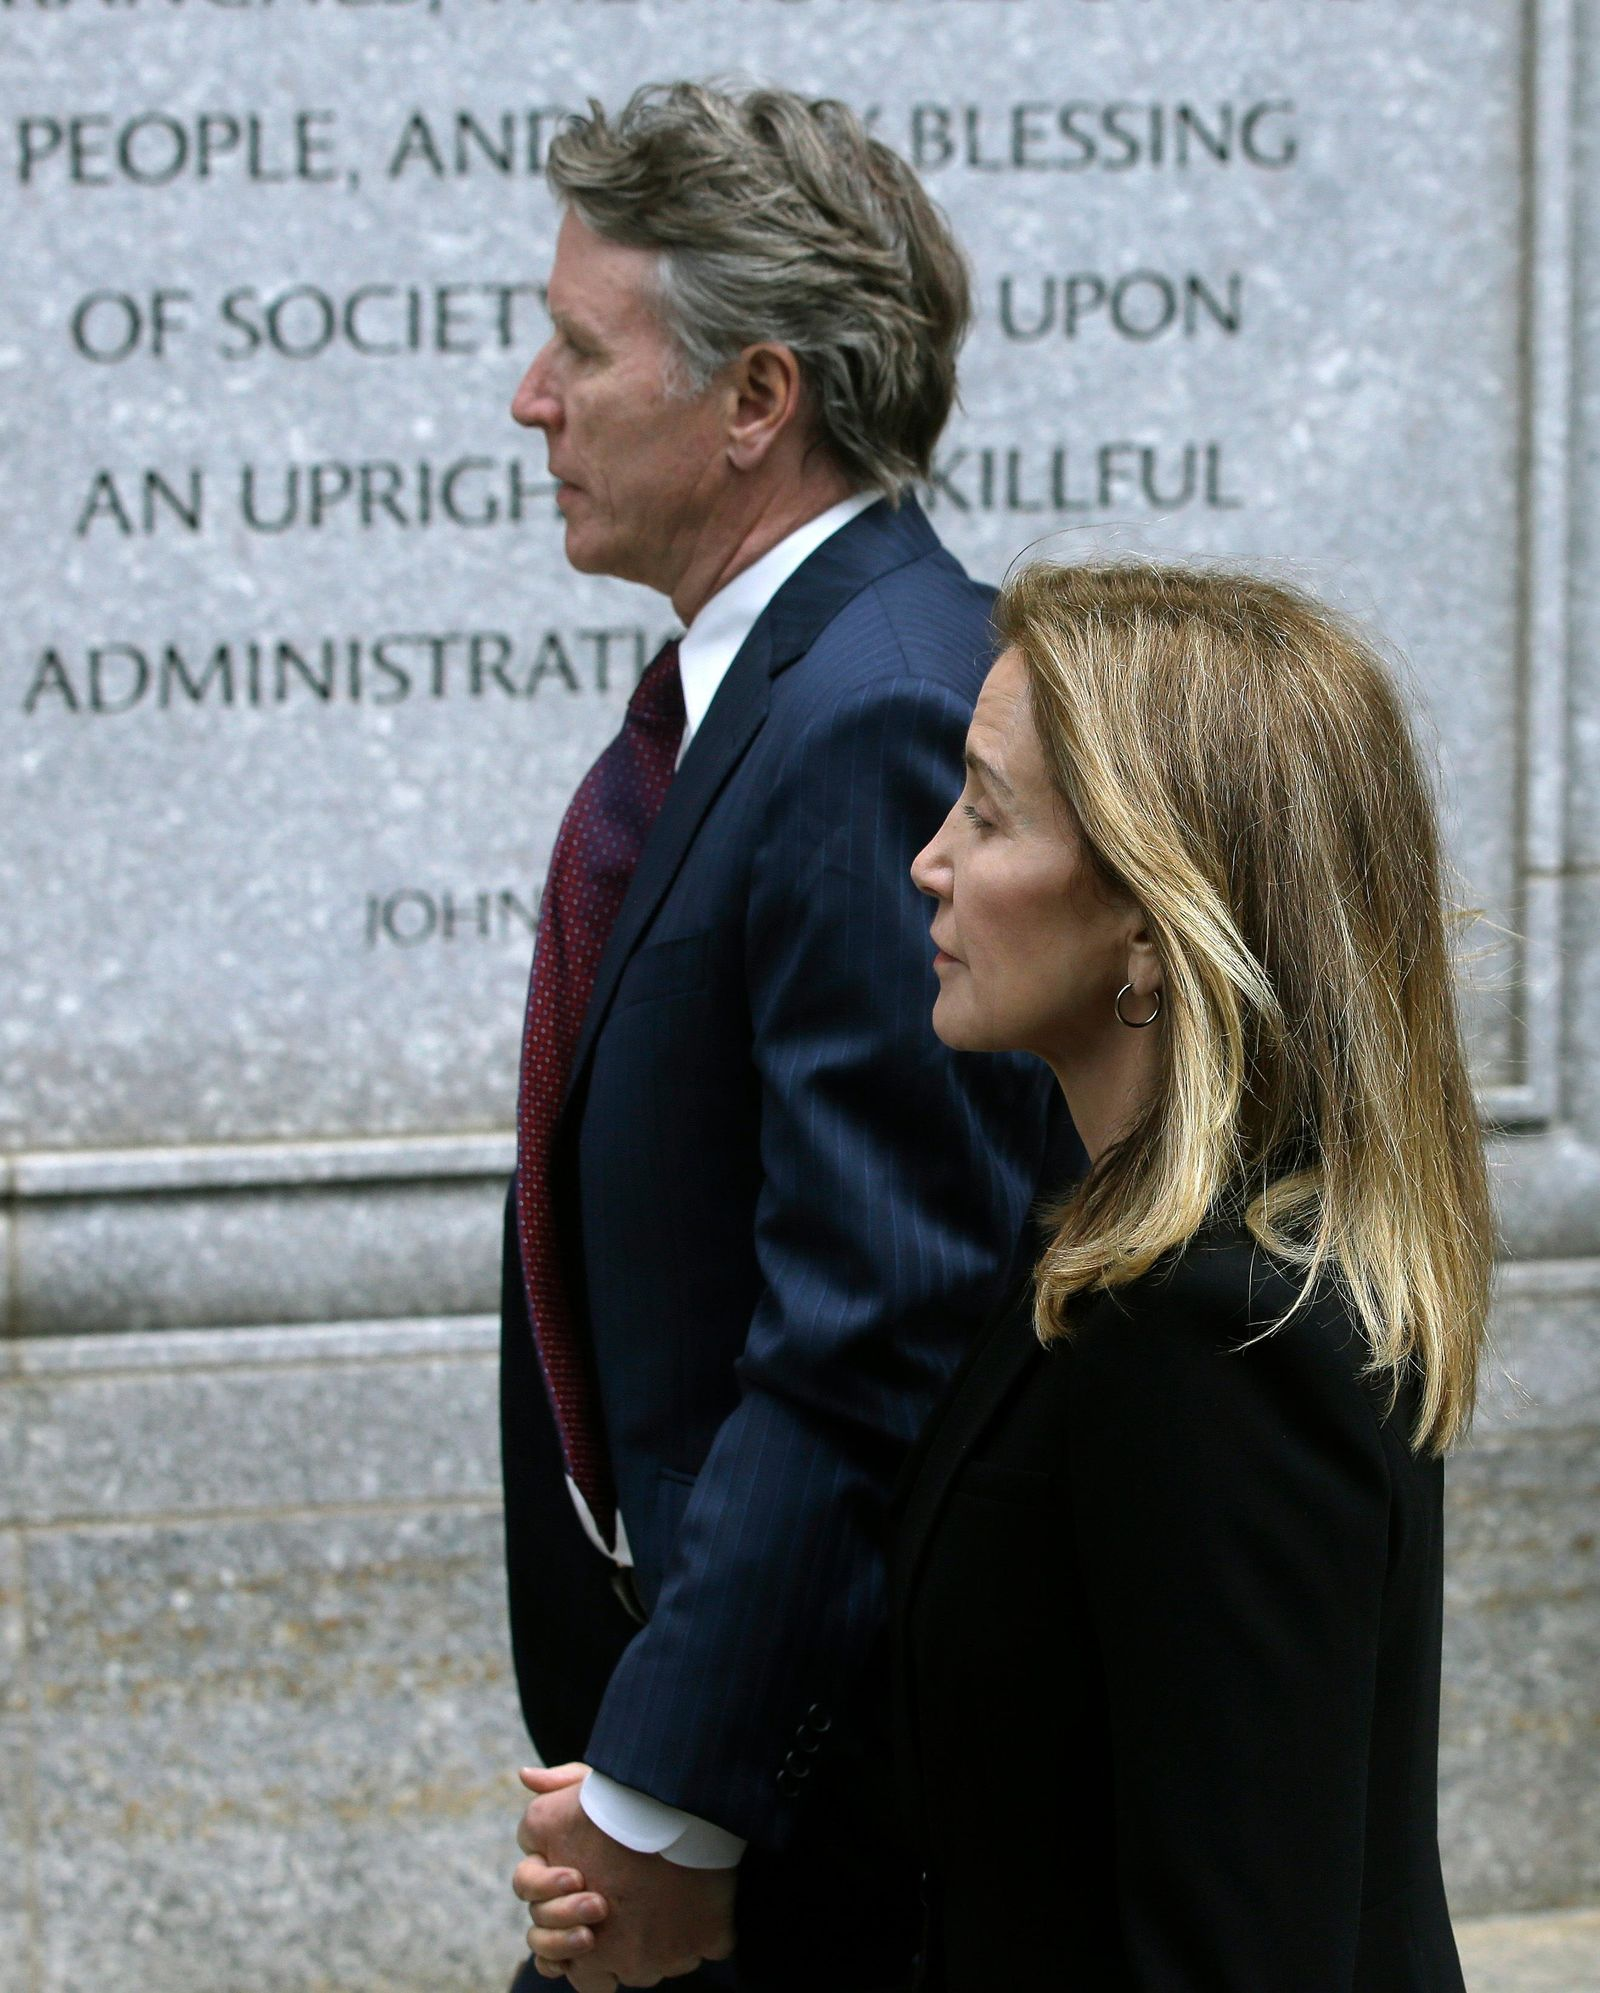 Actress Felicity Huffman arrives with her brother Moore Huffman Jr., at federal court Monday, May 13, 2019, in Boston, where she is scheduled to plead guilty to charges in a nationwide college admissions bribery scandal. (AP Photo/Steven Senne)